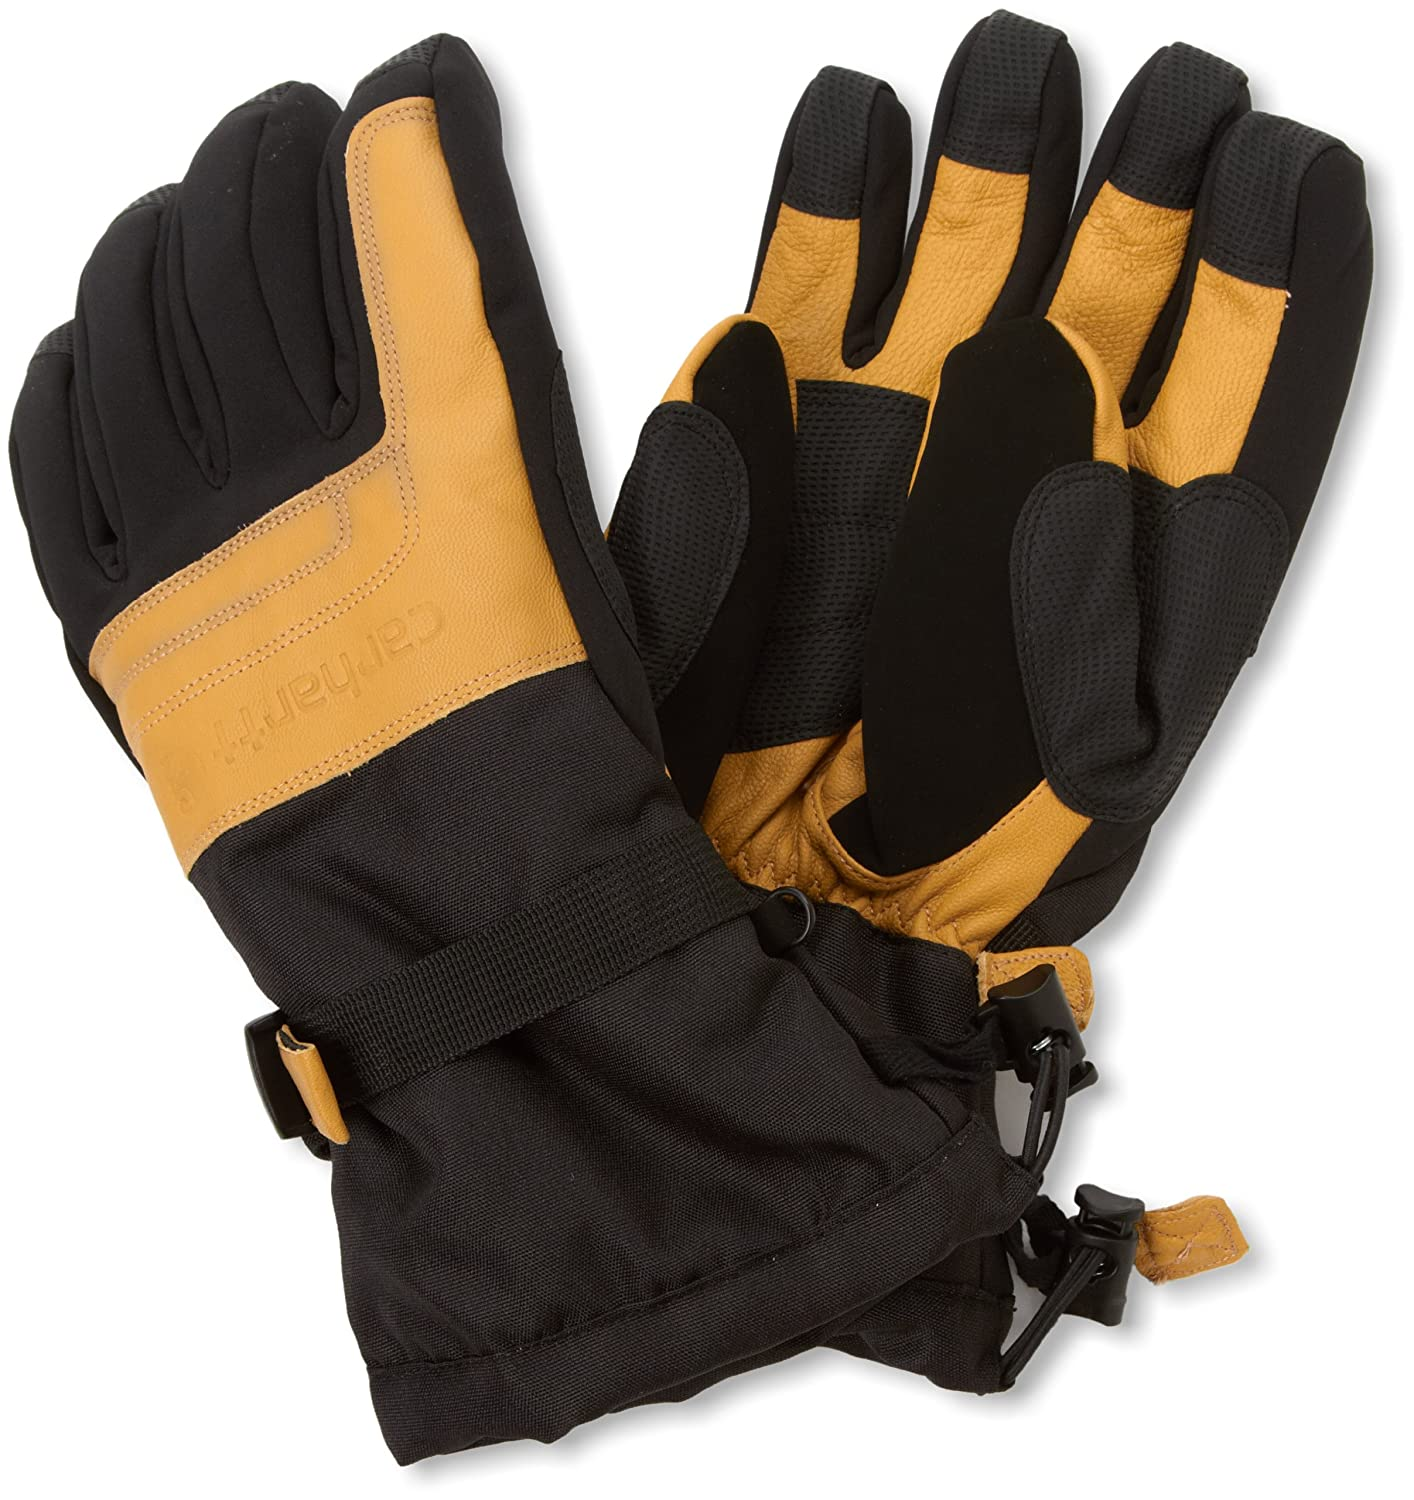 Carhartt Men's Cold Snap Insulated Work Glove, Black/Barley, X-Large A505